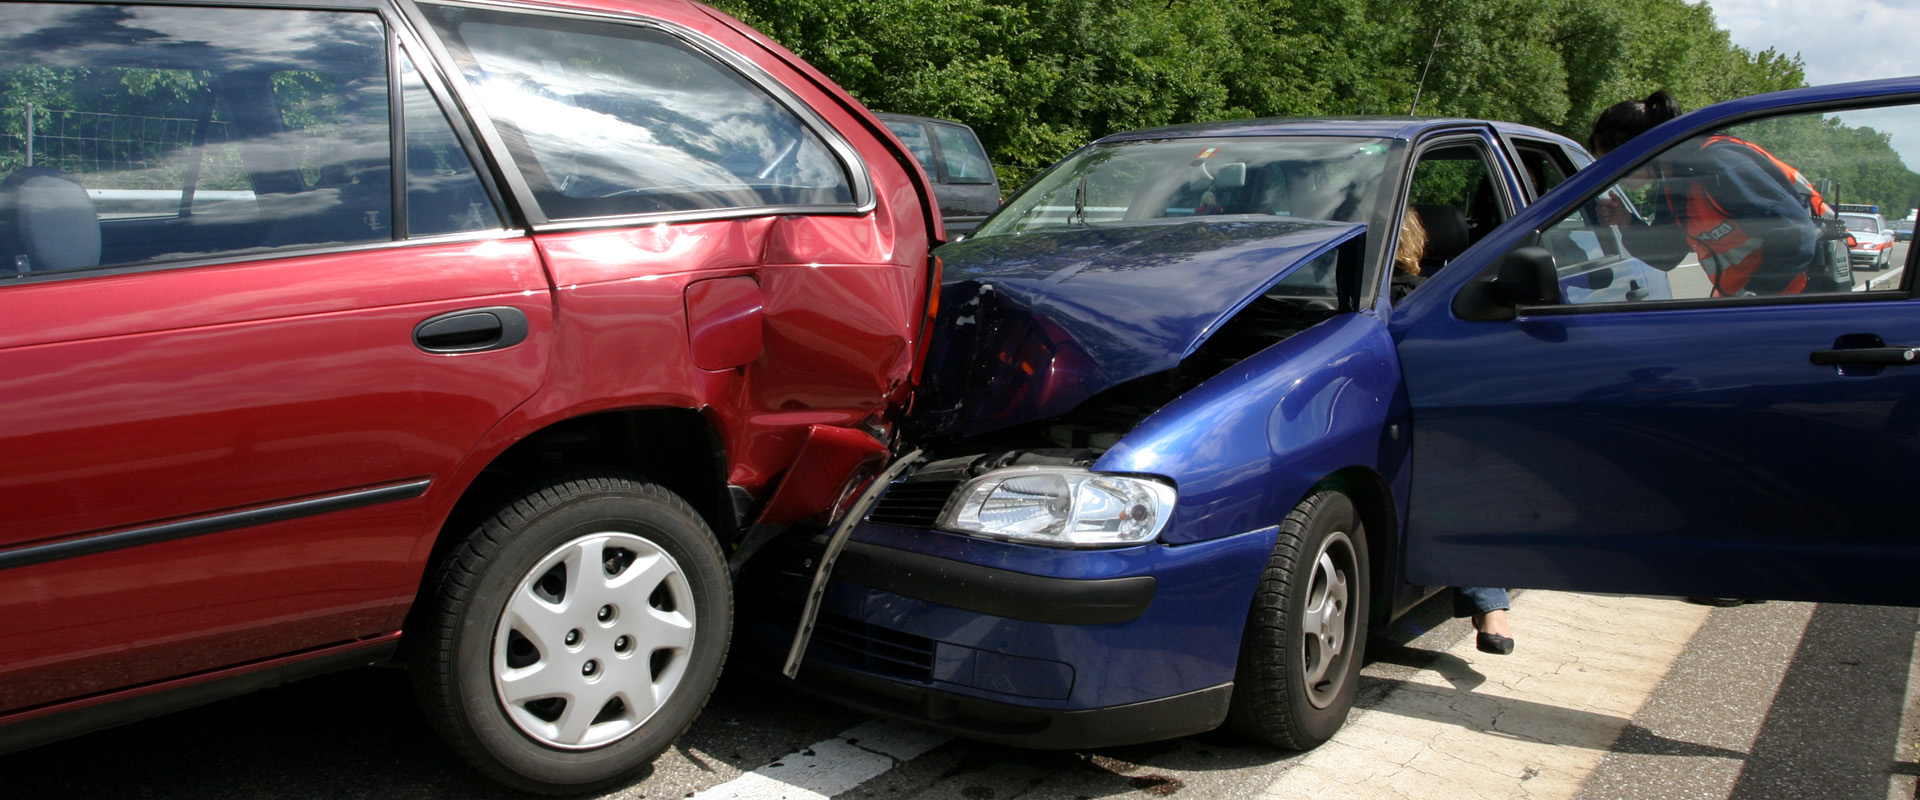 Image for auto injury page